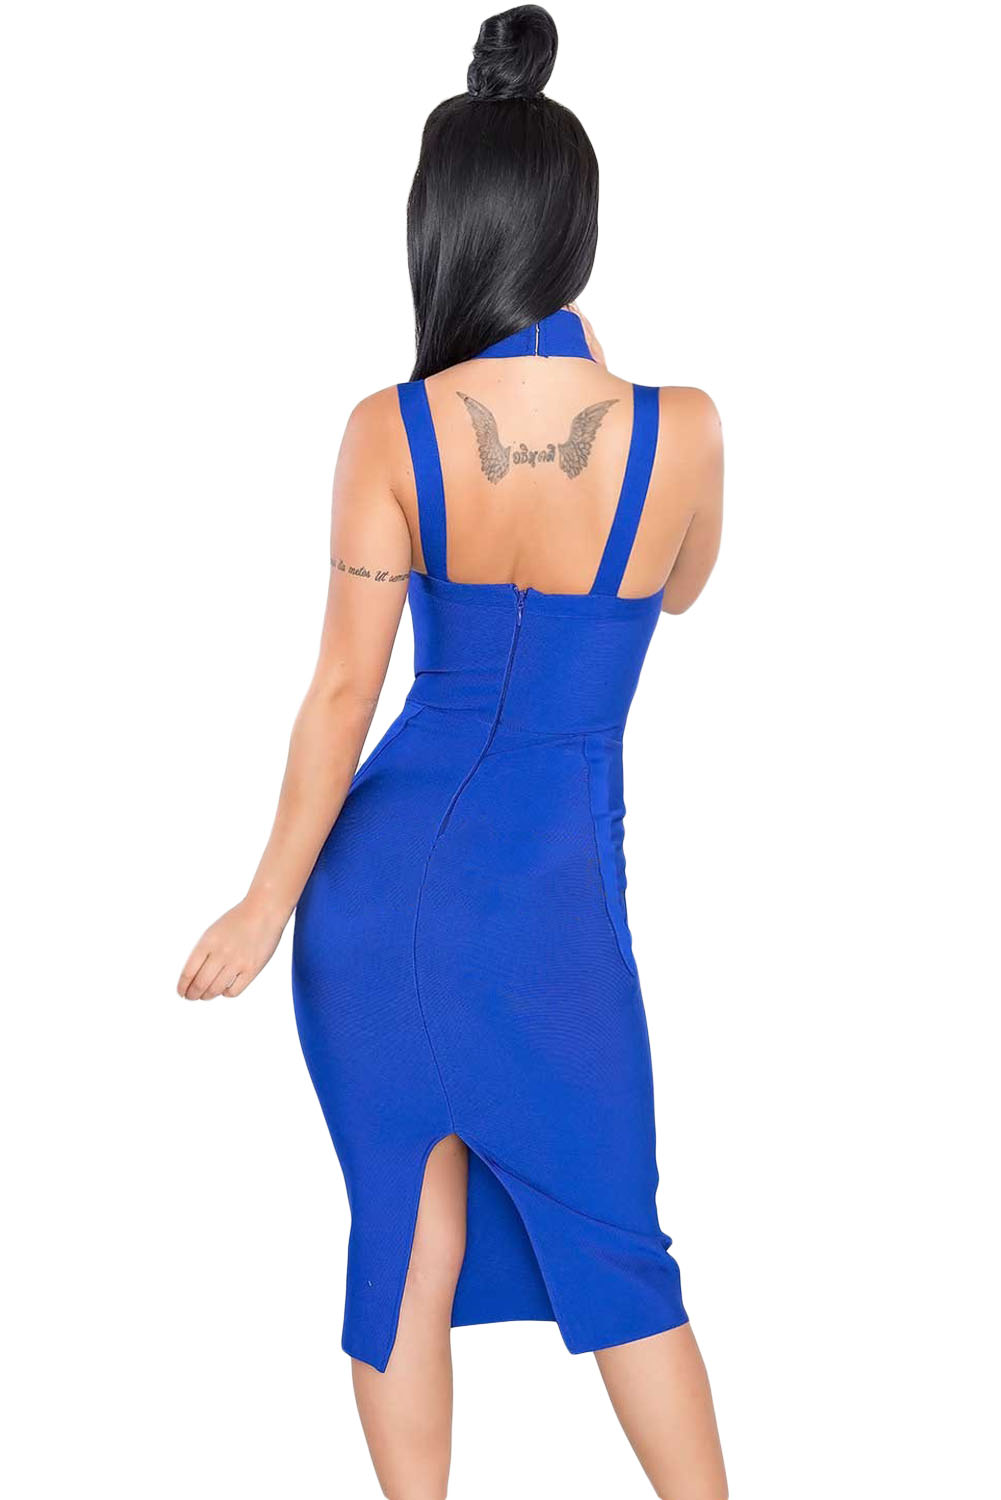 royal blue high neck hollow out bandage dress charming wear